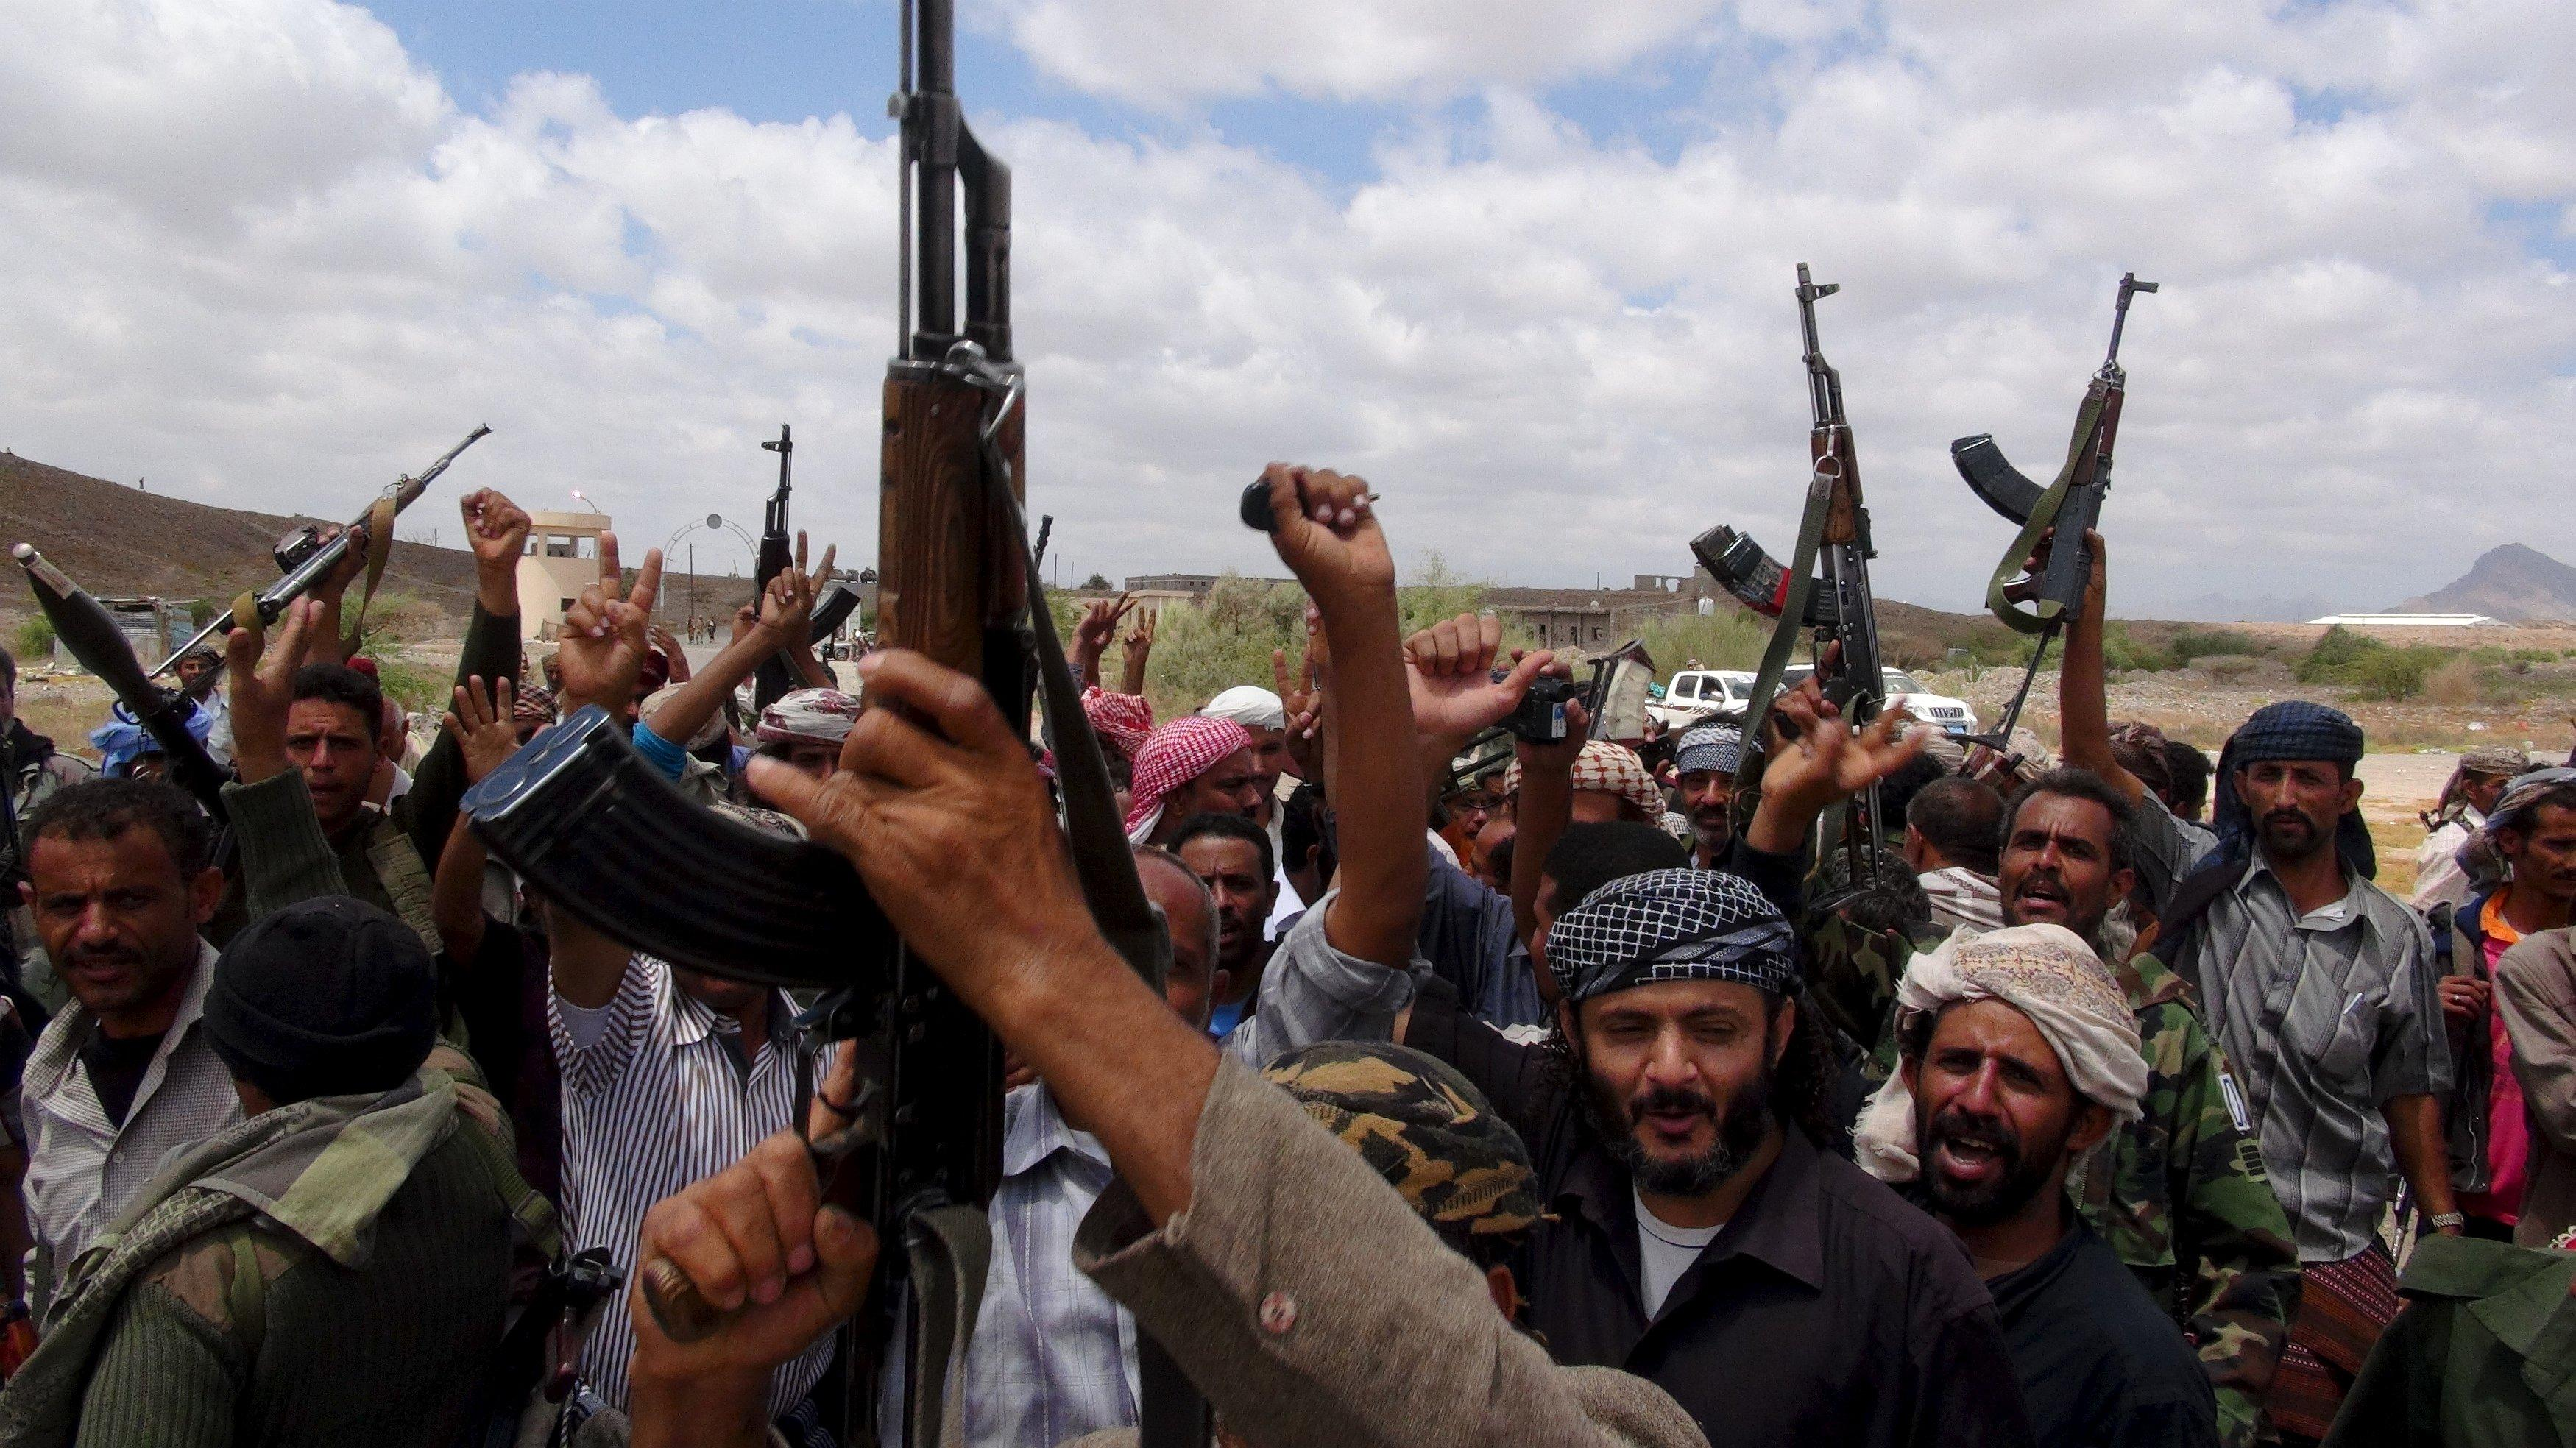 Southern People's Resistance militants loyal to Yemen's President Abd-Rabbu Mansour Hadi celebrate seizing the al-Anad air base in the country's southern province of Lahej March 22, 2015. Houthi fighters opposed to Yemen's president took over the central city of Taiz in an escalation of a power struggle diplomats say risks drawing in neighboring oil giant Saudi Arabia and its main regional rival Iran. Residents of Taiz, on a main road from the capital Sanaa to the country's second city of Aden, said that Houthi militias took over the city's military airport without a struggle from local authorities late on Saturday. REUTERS/Nabeel Quaiti